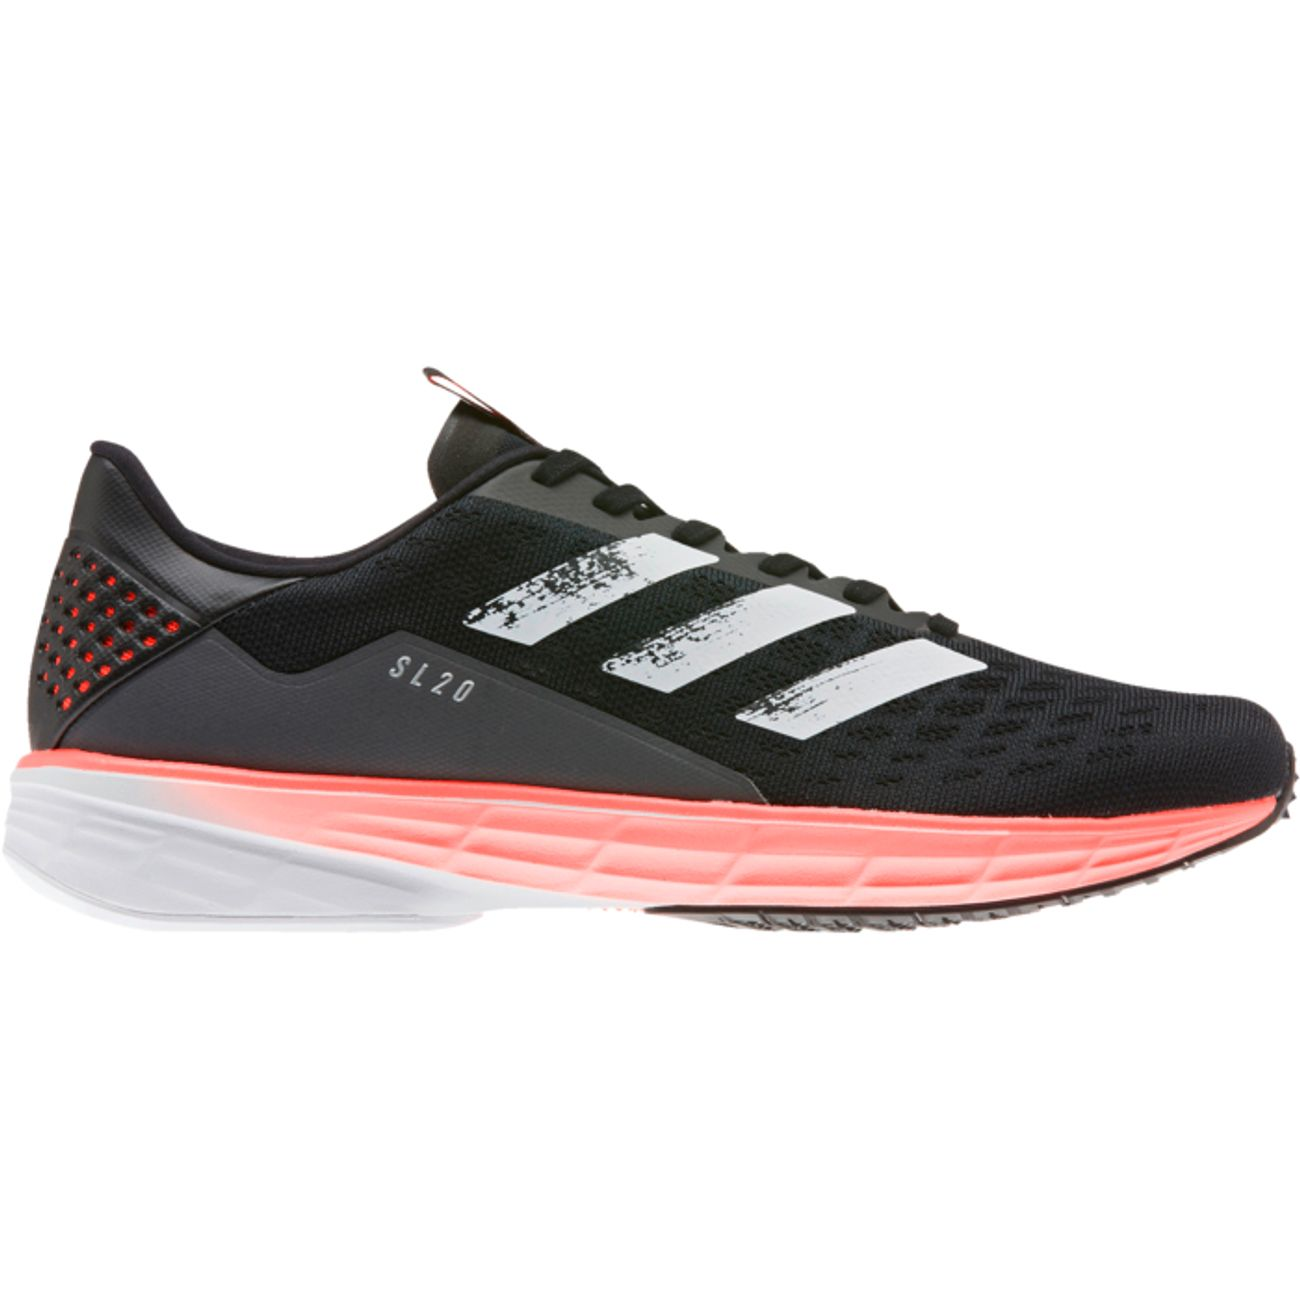 CHAUSSURES BASSES running homme ADIDAS SL20